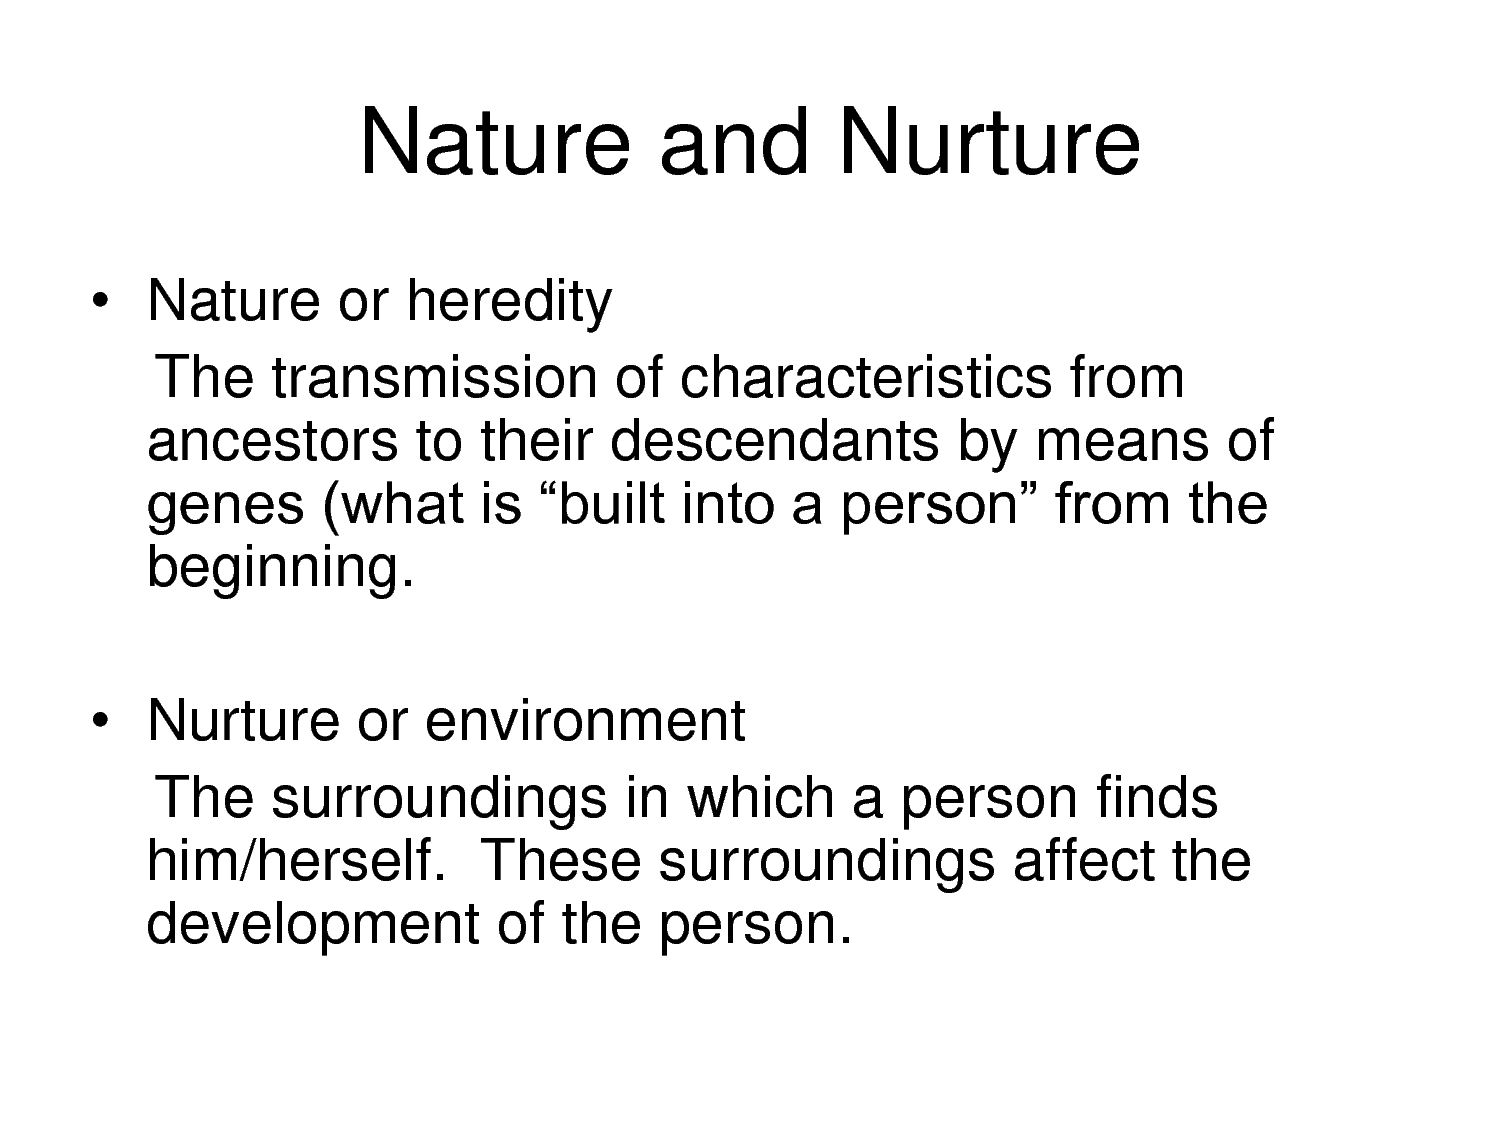 an essay on nature vs nurture The causes of a criminal mind nature versus nurture in today's society, one will find that there are many different factors that go into the development of a.